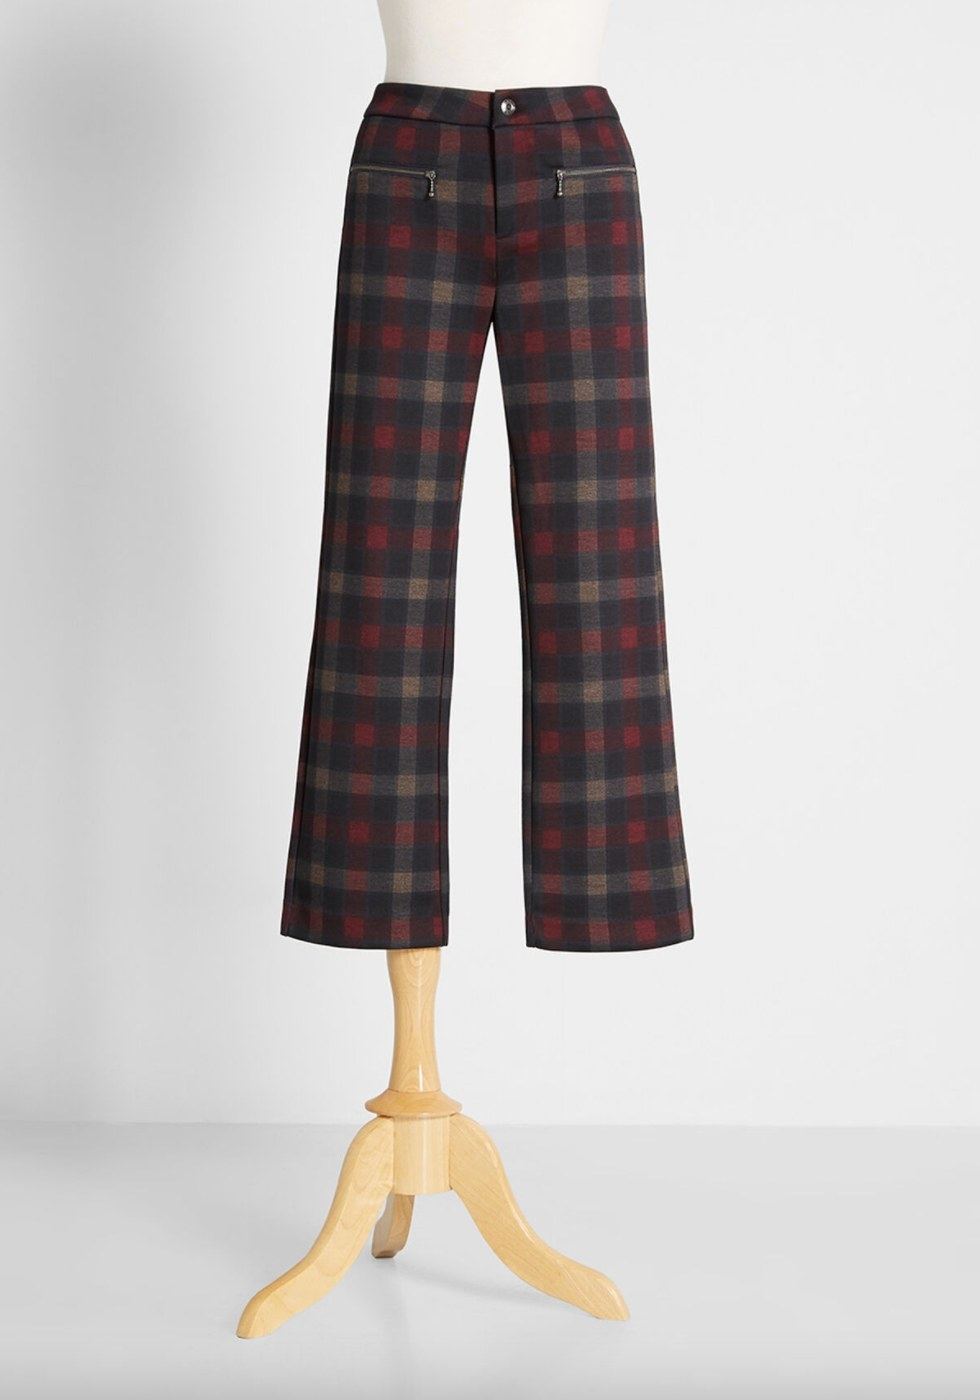 the red, navy, black, and gray plaid pants